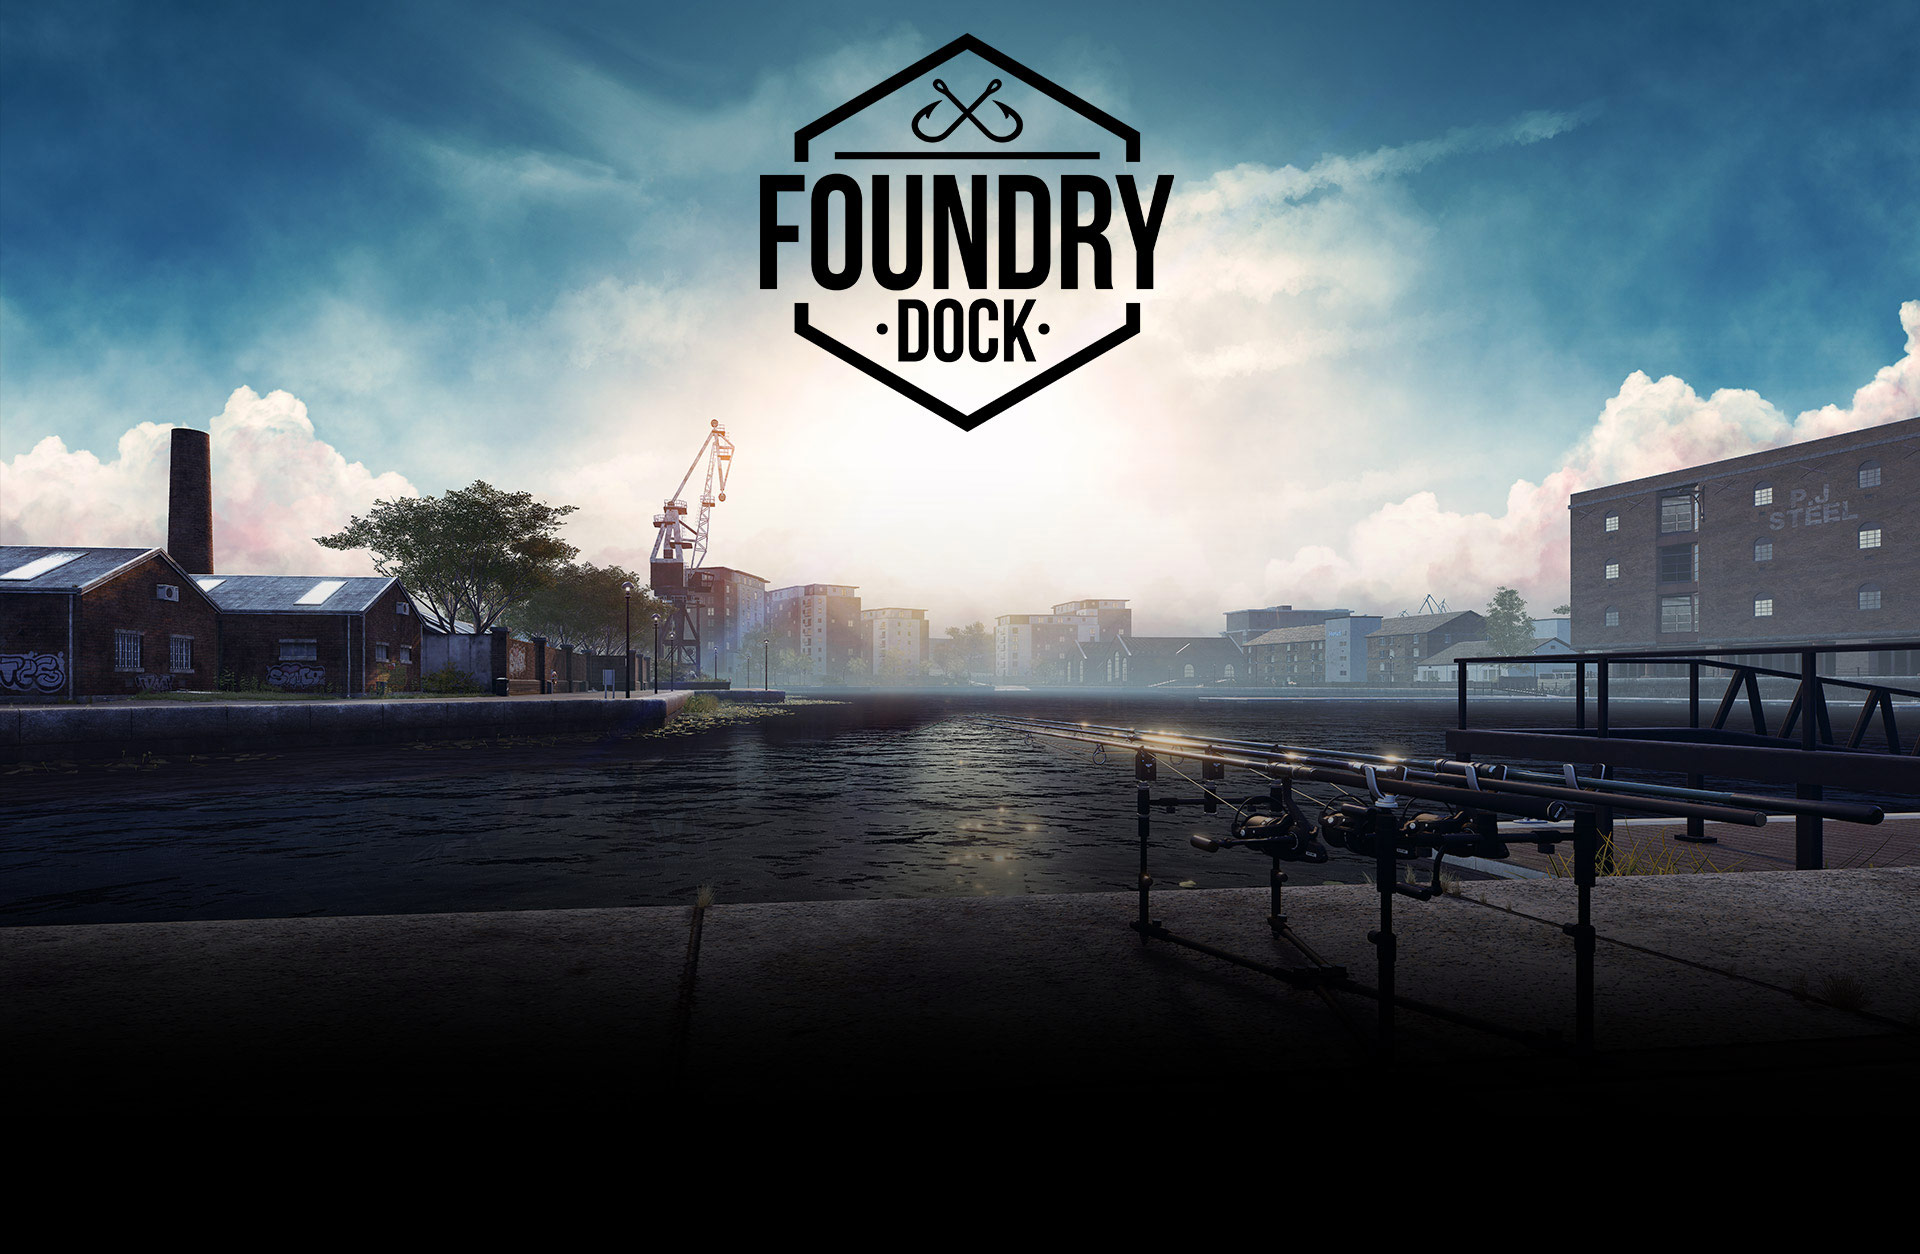 Euro Fishing: Foundry Dock (DLC)